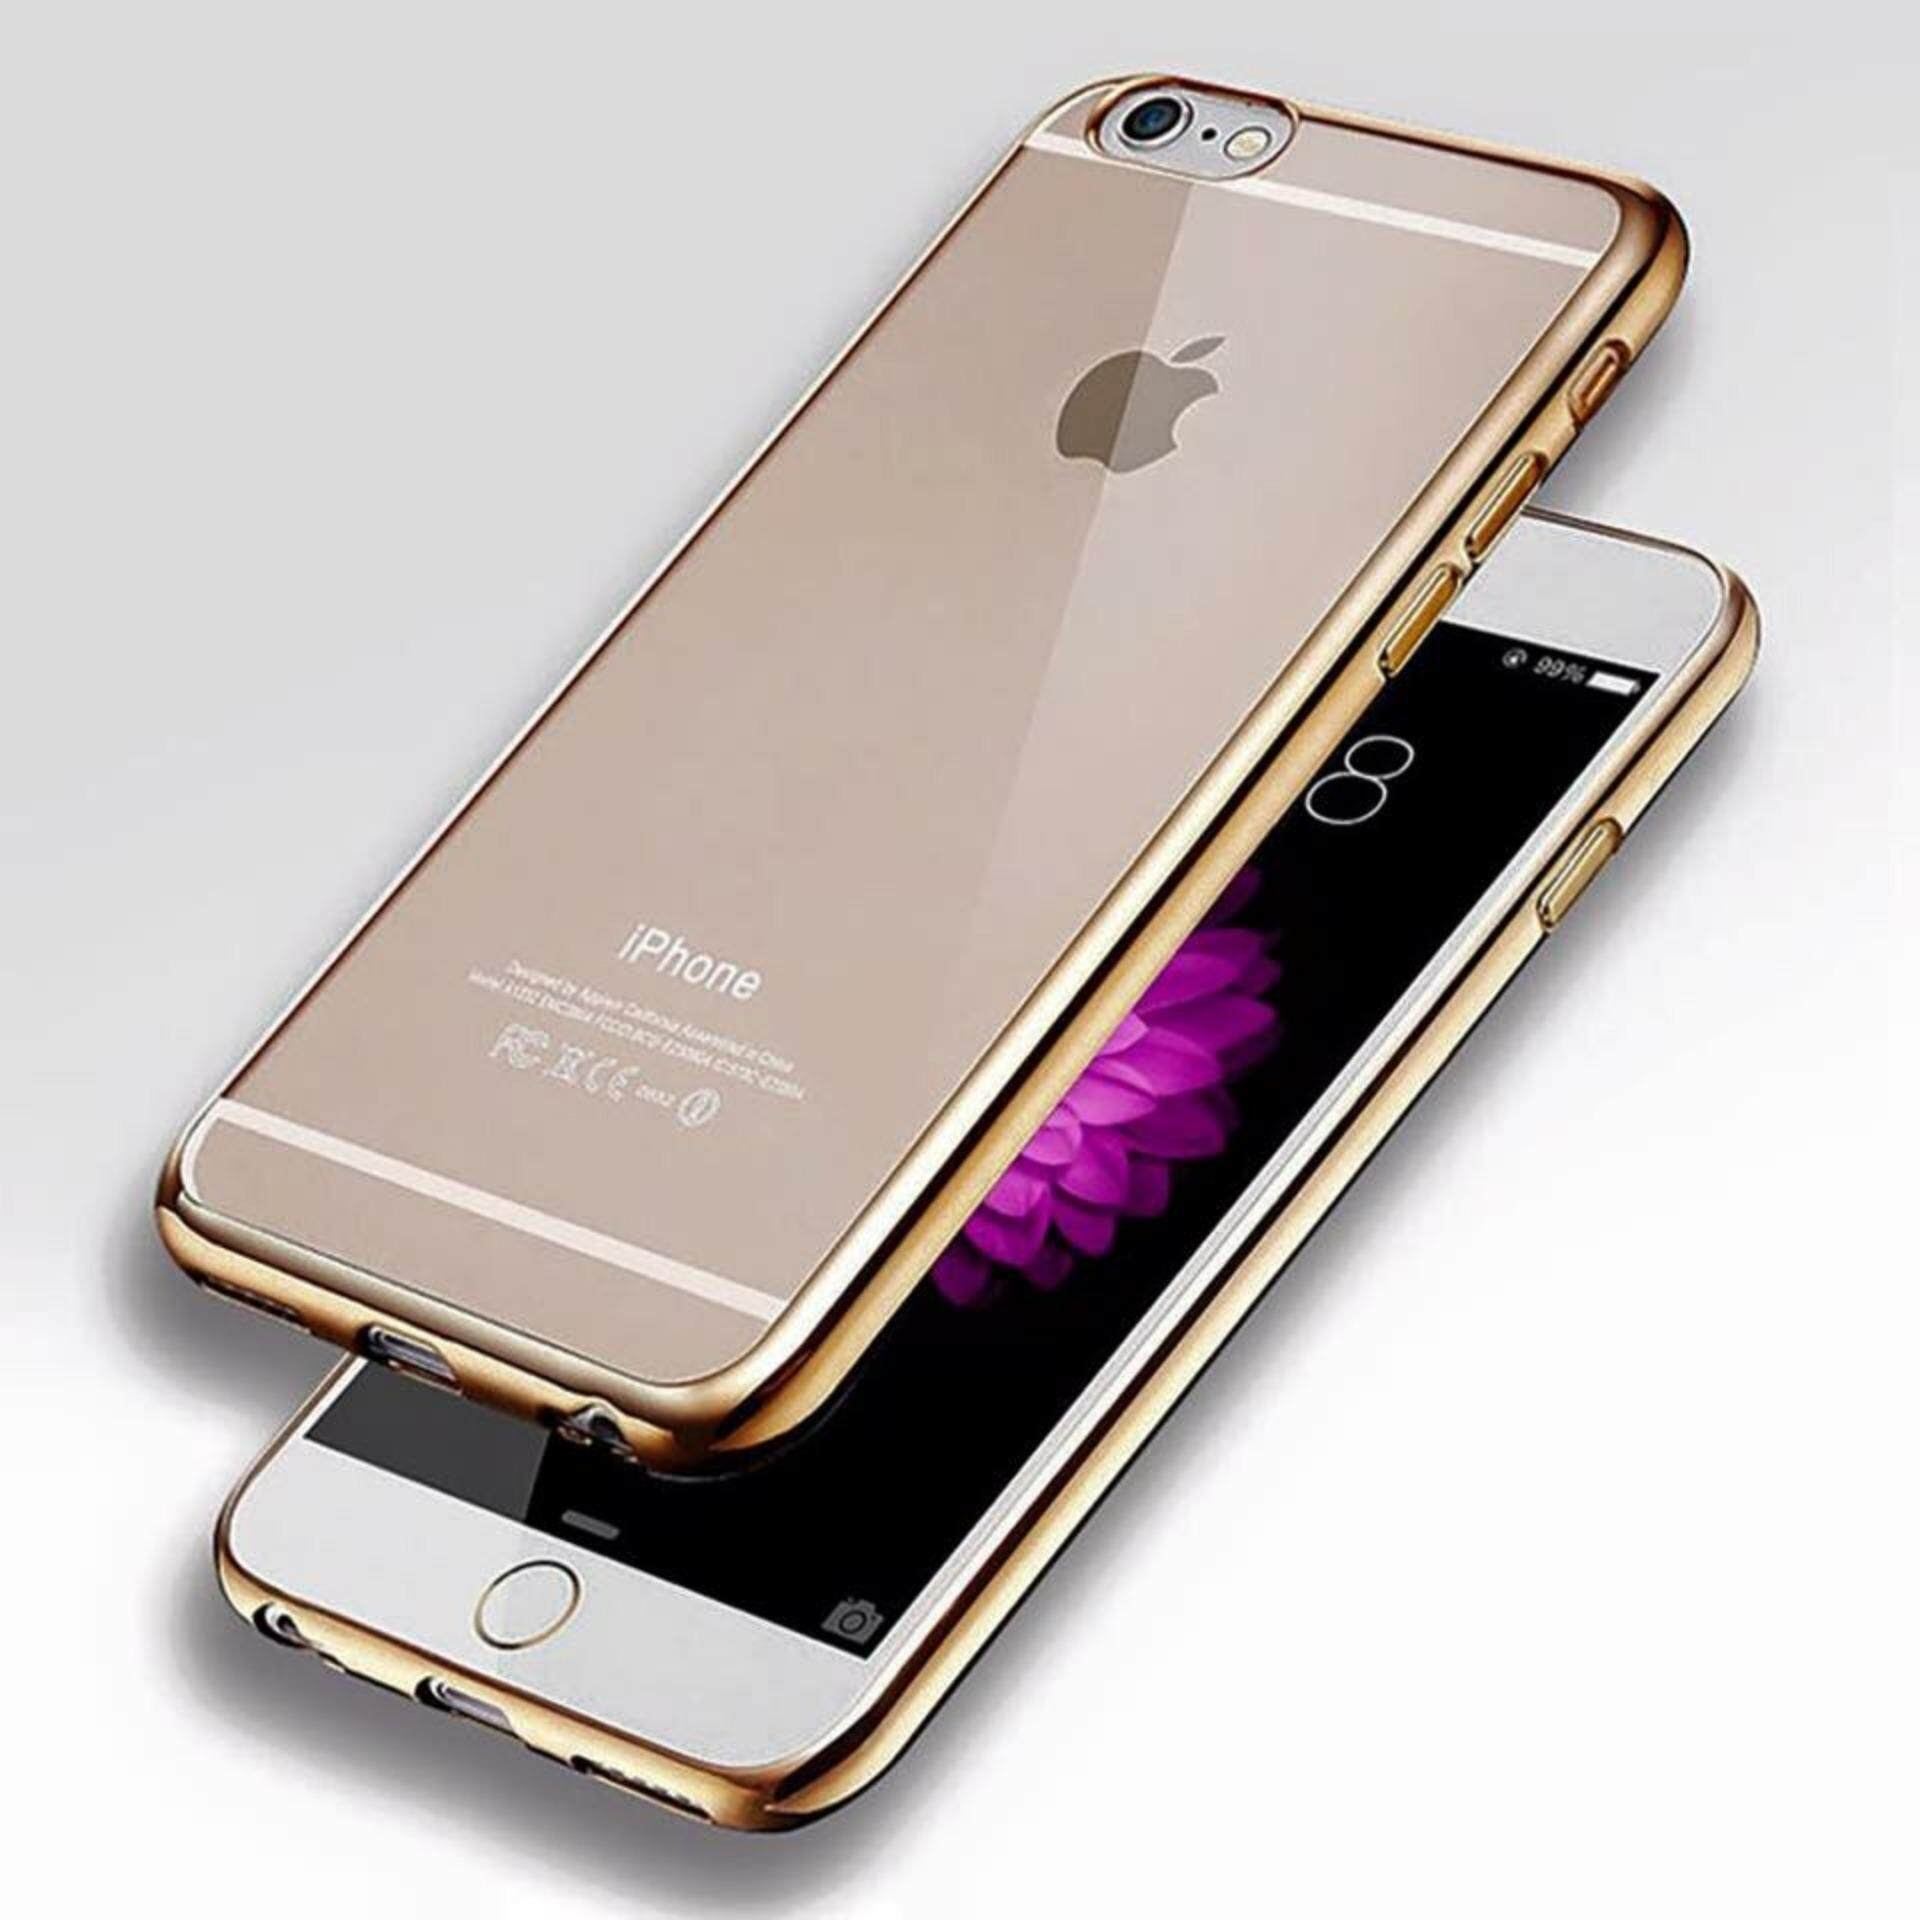 ViLi Apple iPhone 6 6s TPU Silicone Ultrathin Luxury Slim Electroplating Crystal Clear Transparent Soft Back Cover Case Covers (Luxury Gold) FREE 2 Screen Protector